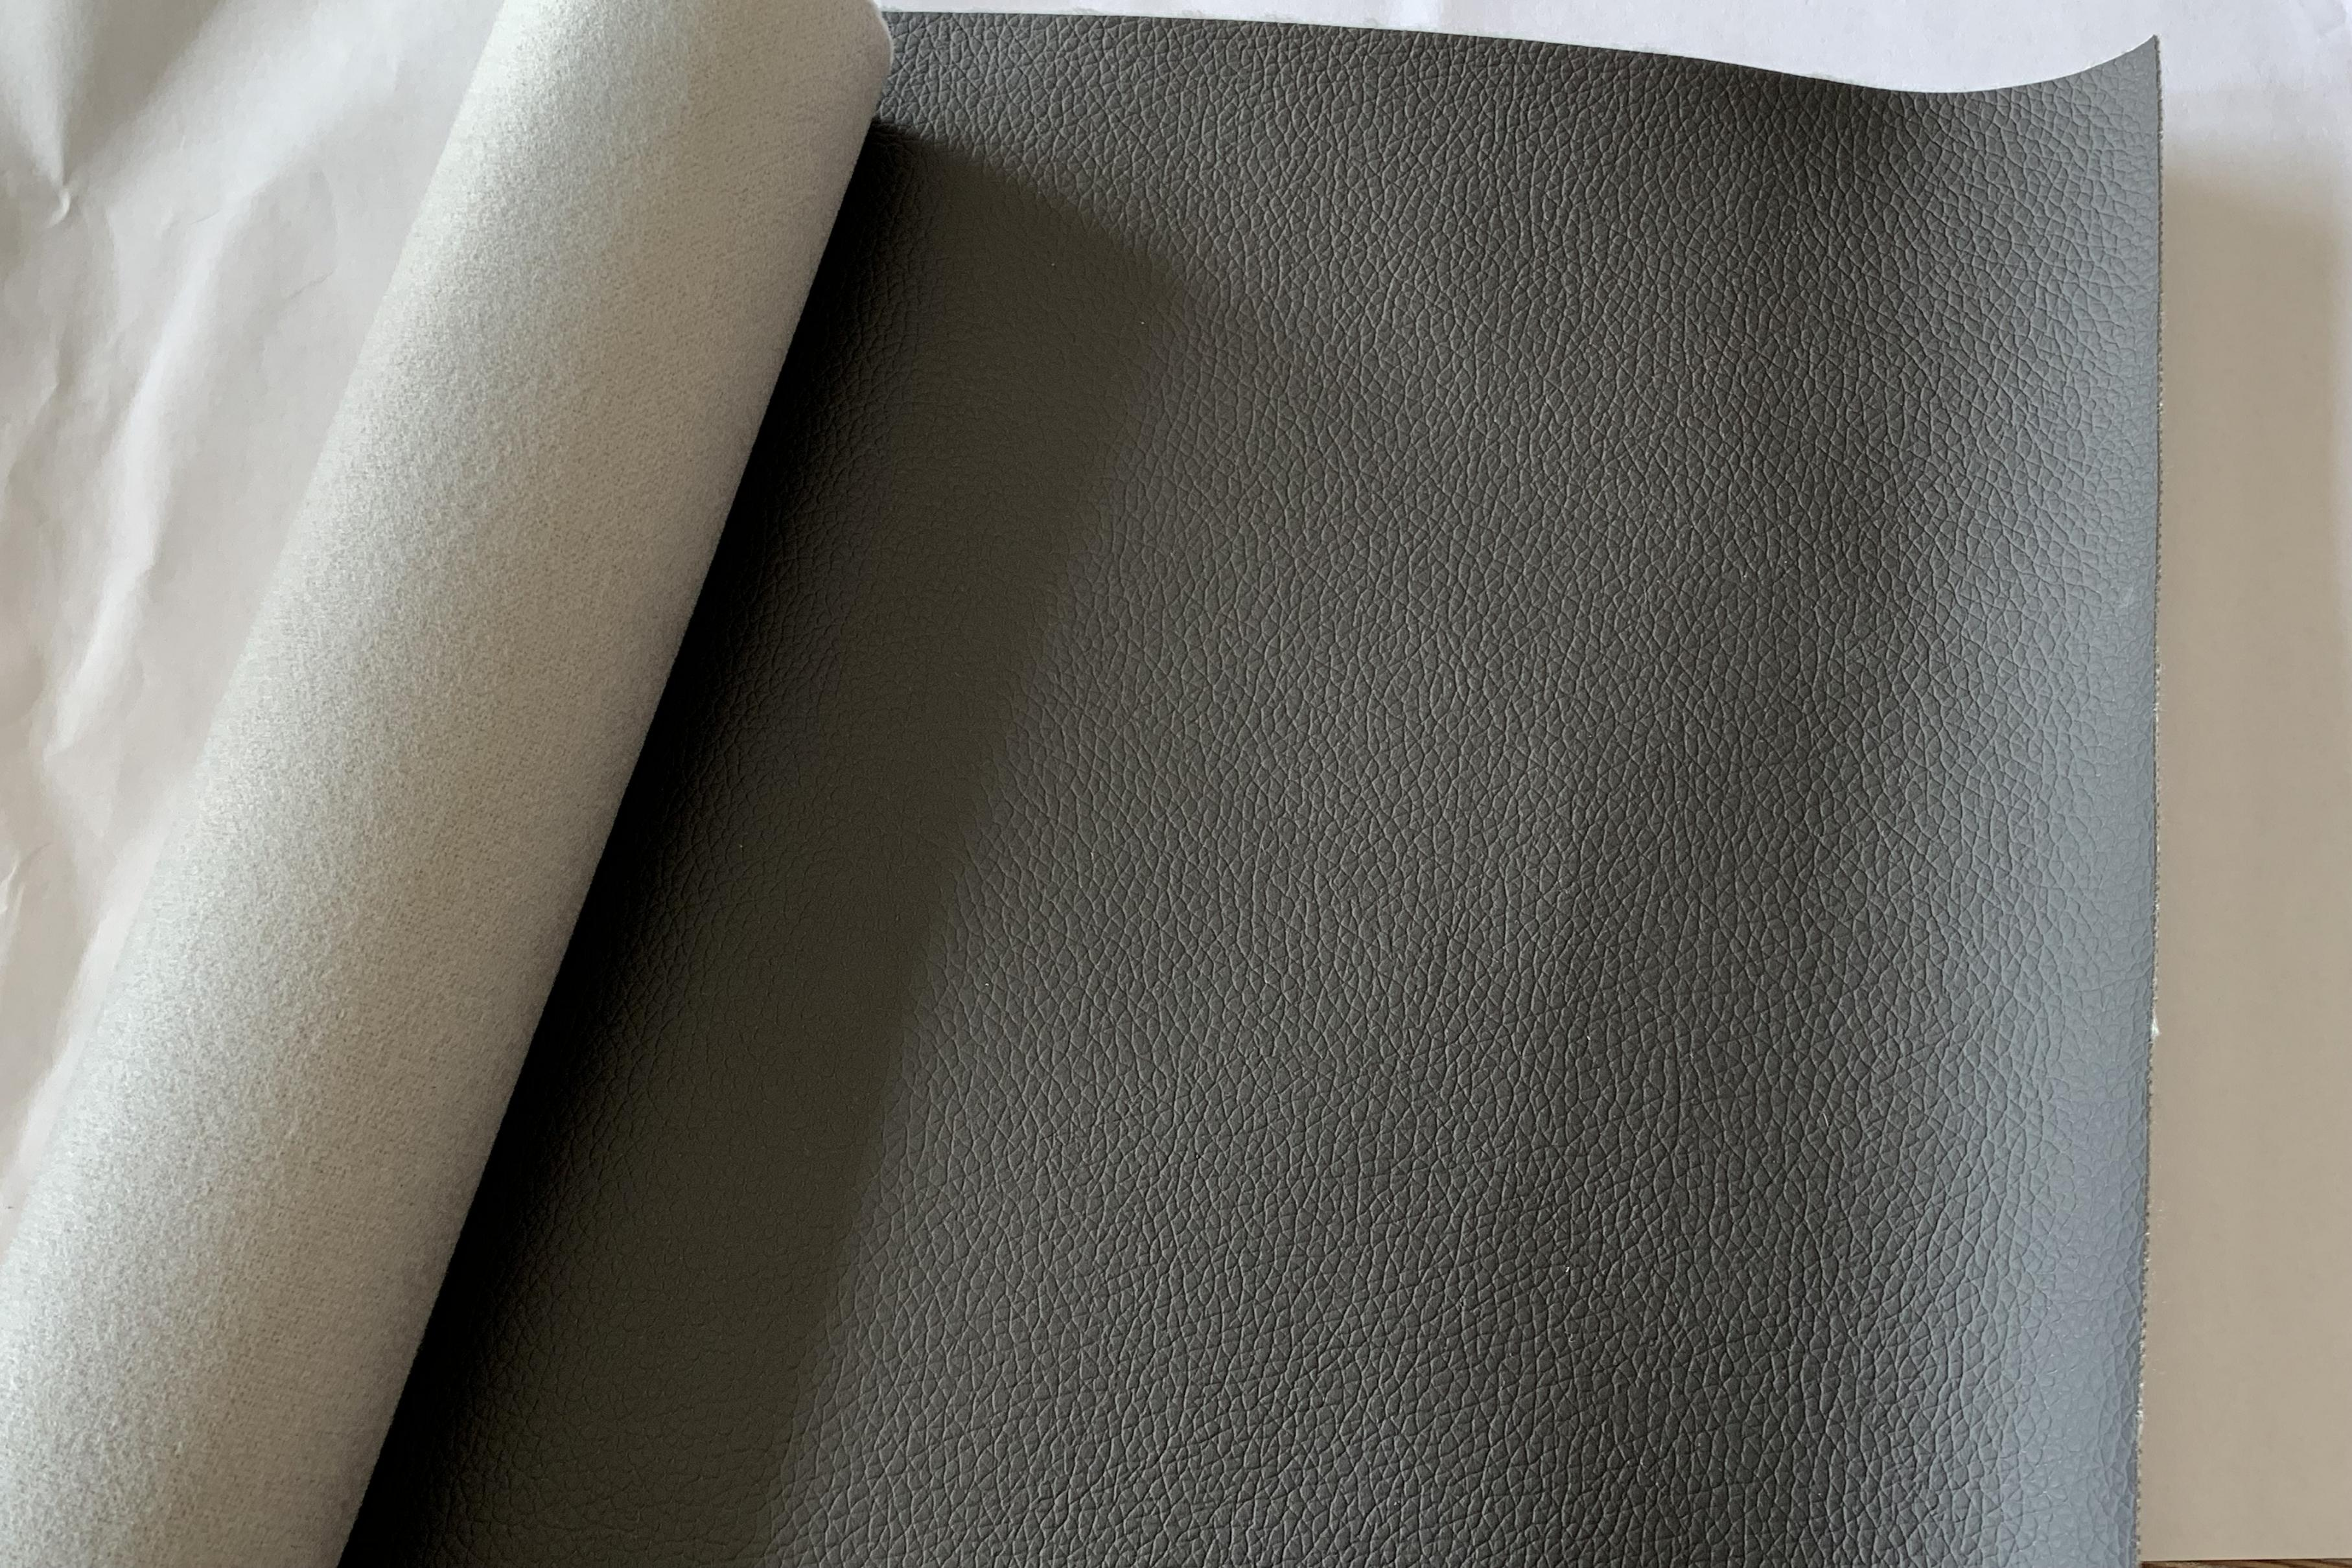 2019 new quality PU leather for sofa,furniture , car ,Eco leather,